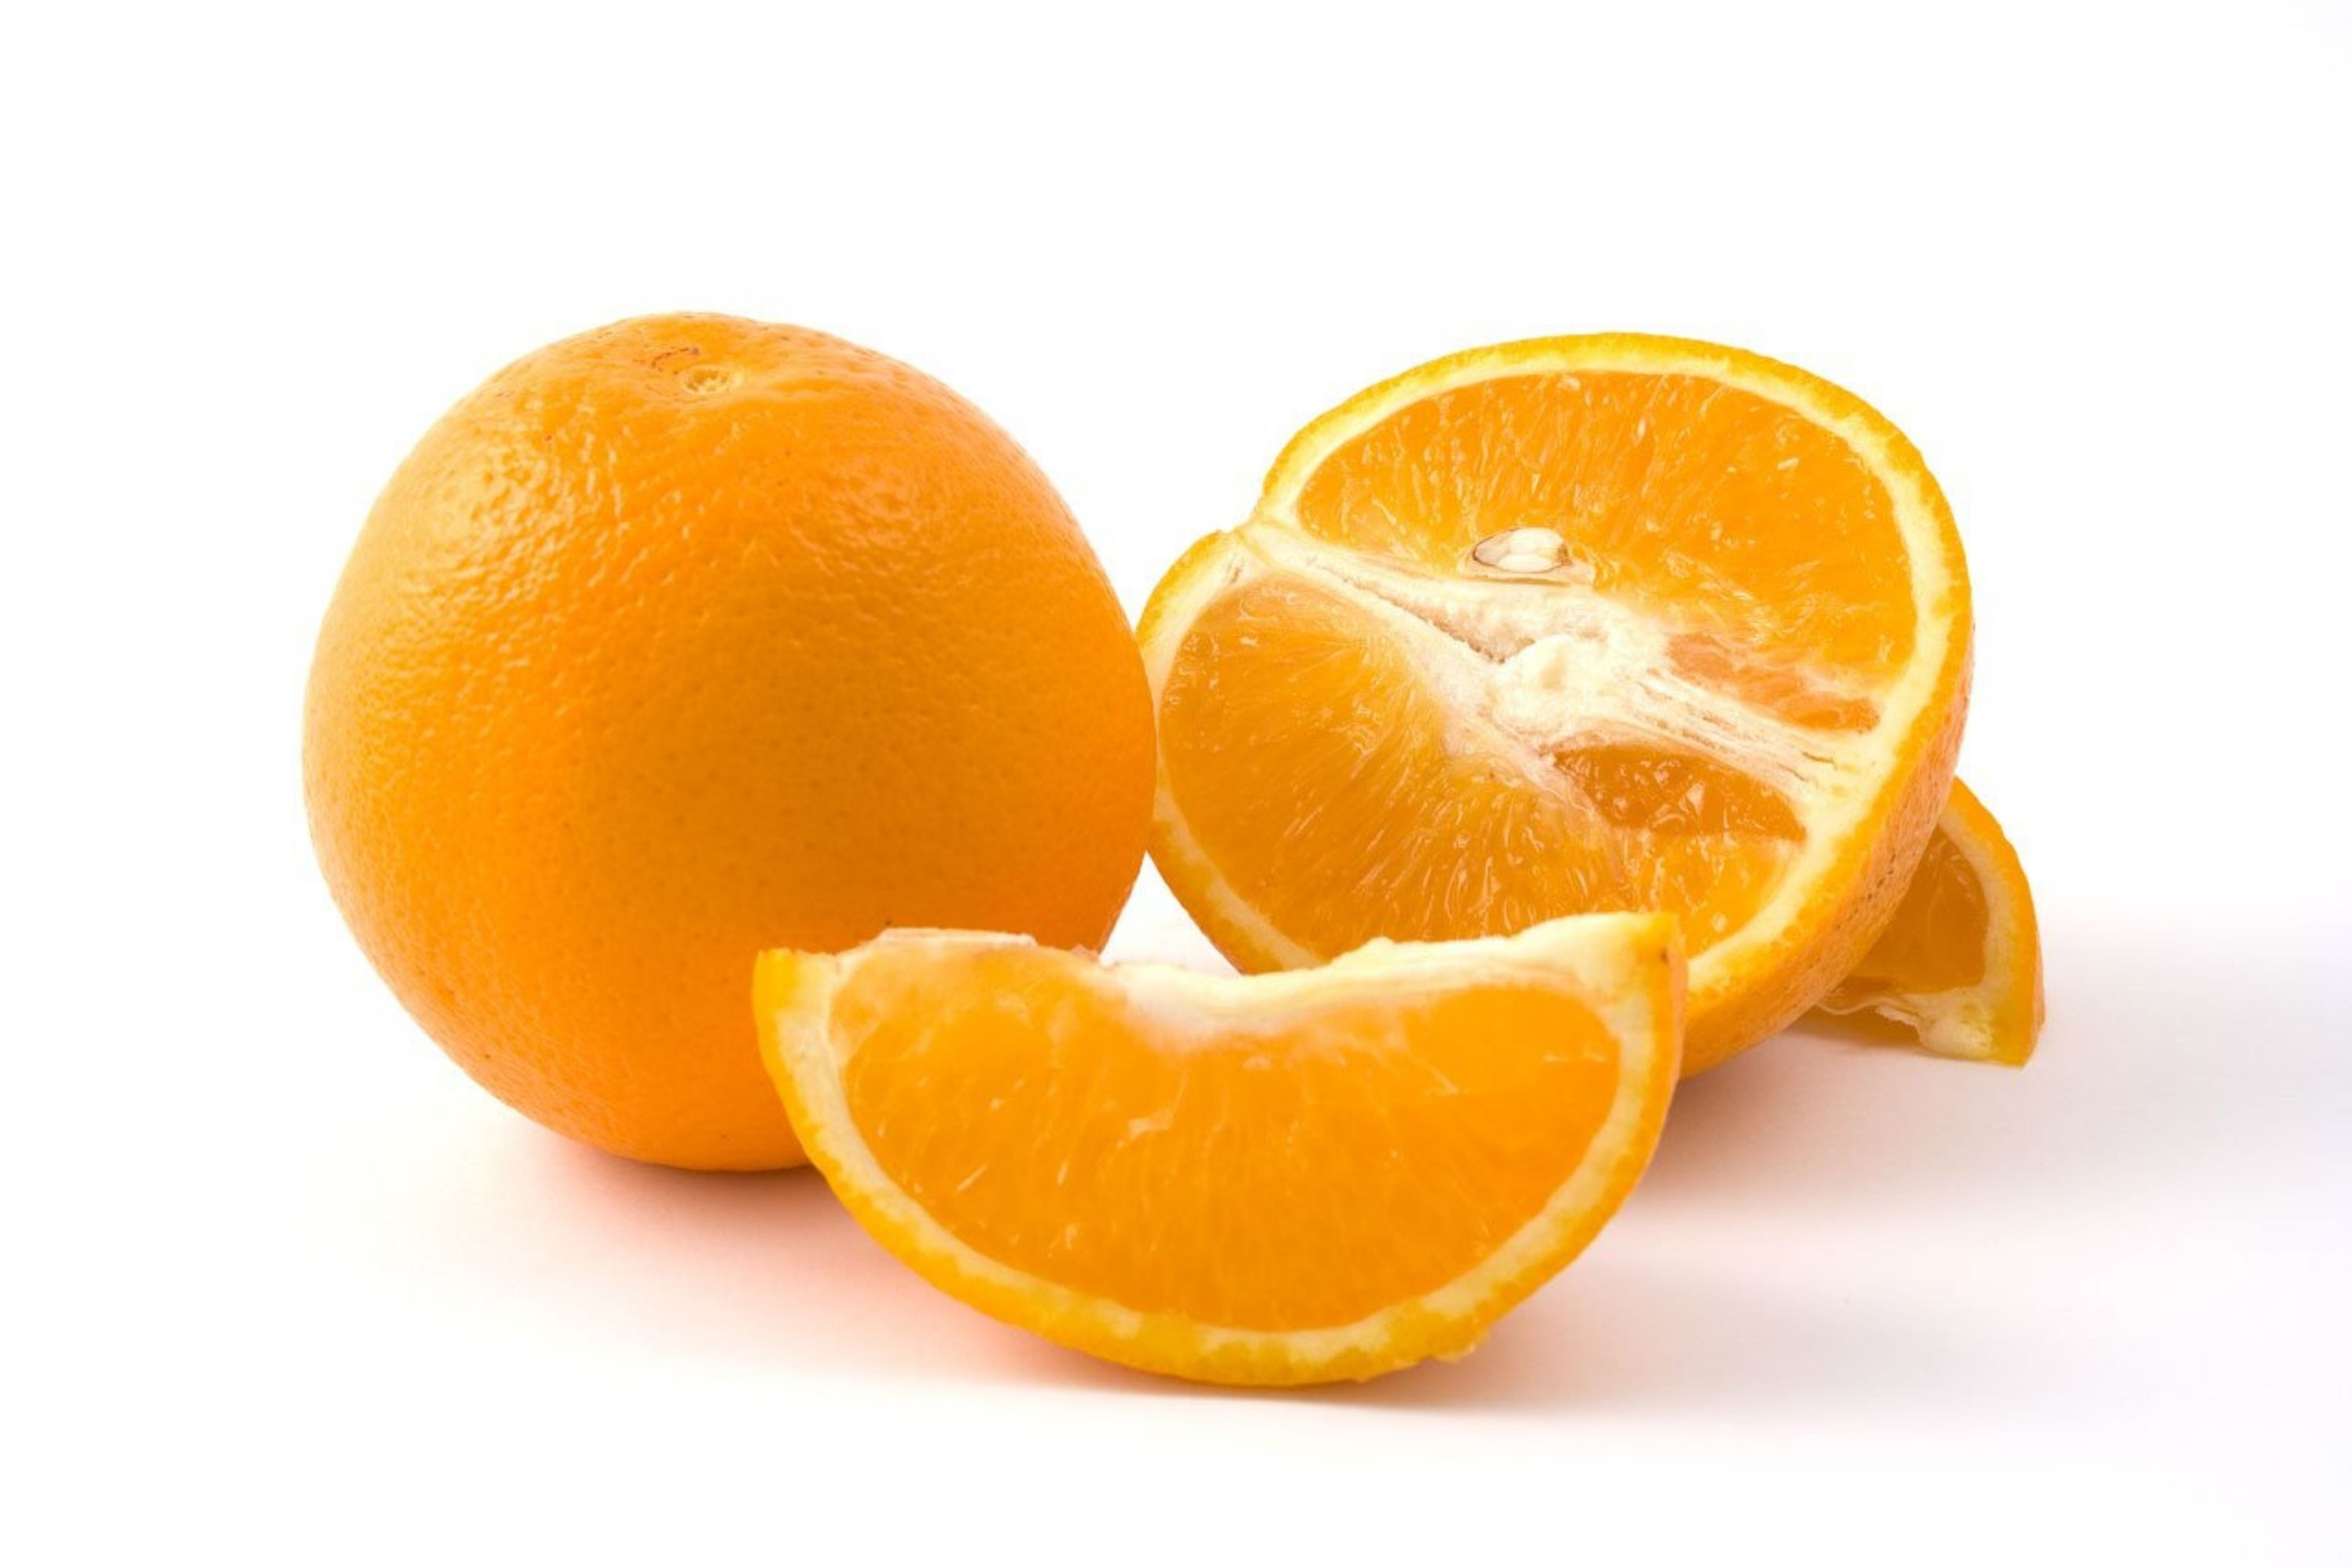 How to Tell if Oranges Are Bad